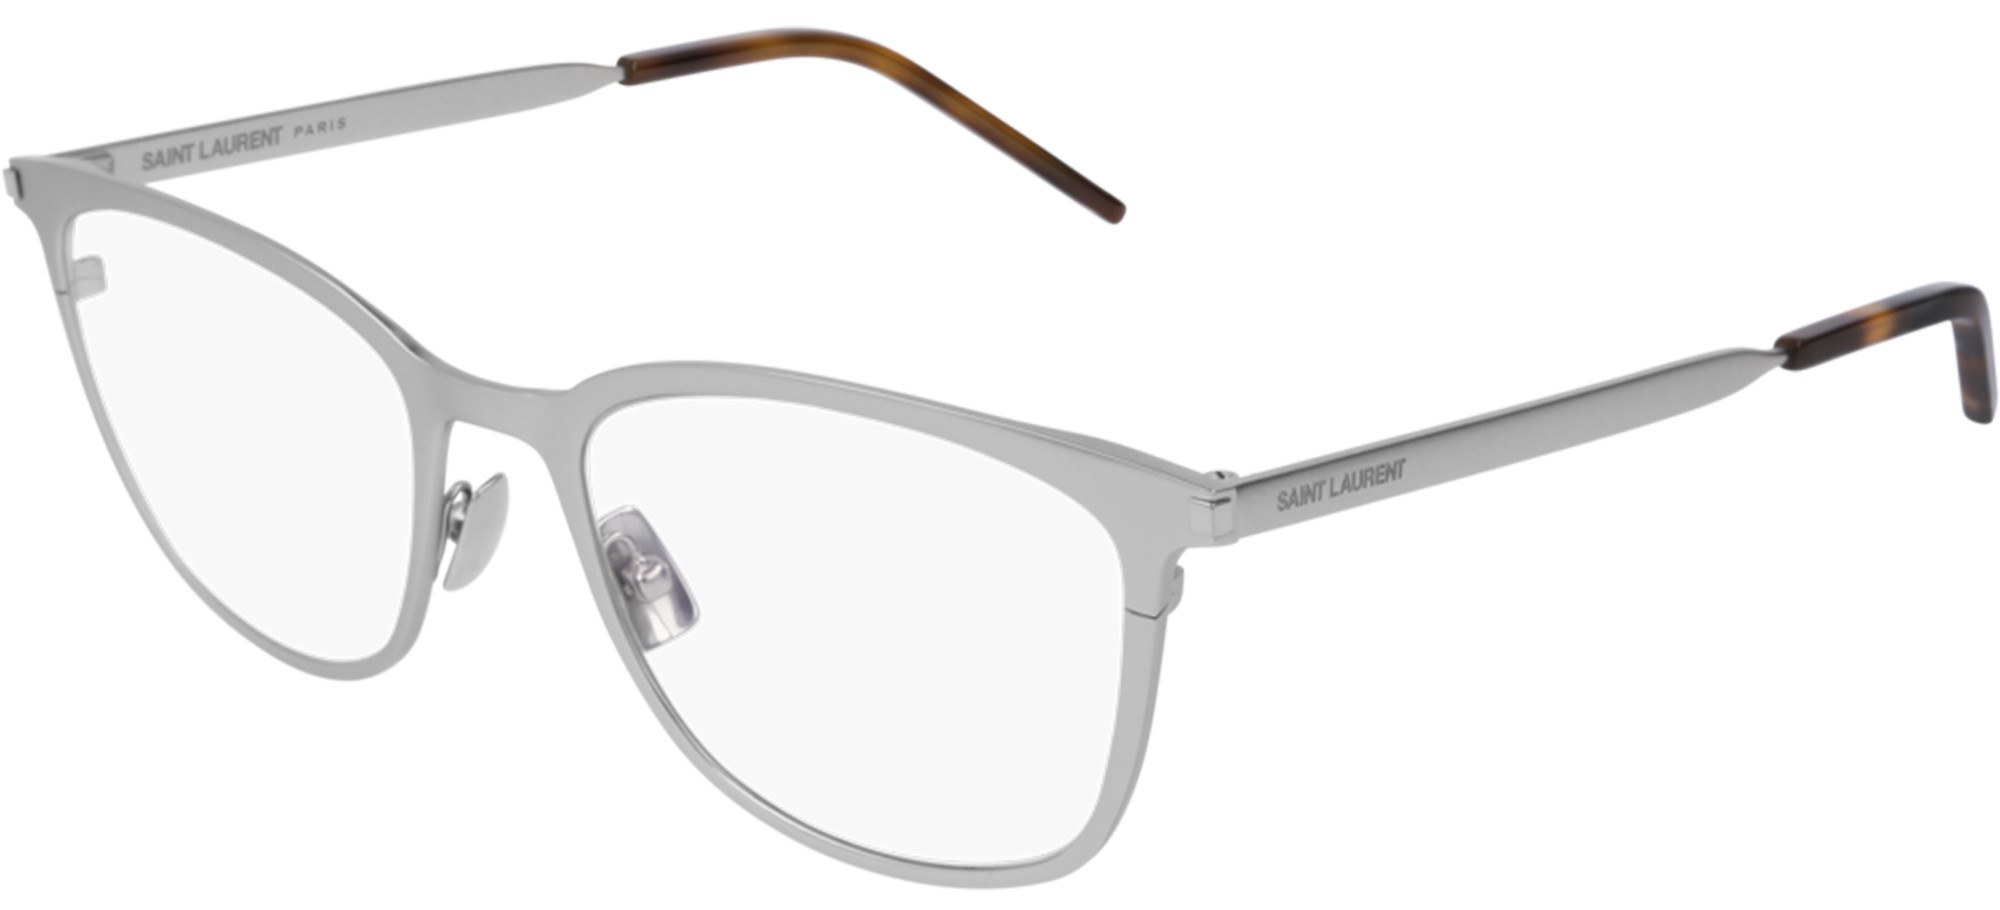 Saint Laurent eyeglasses SL 266